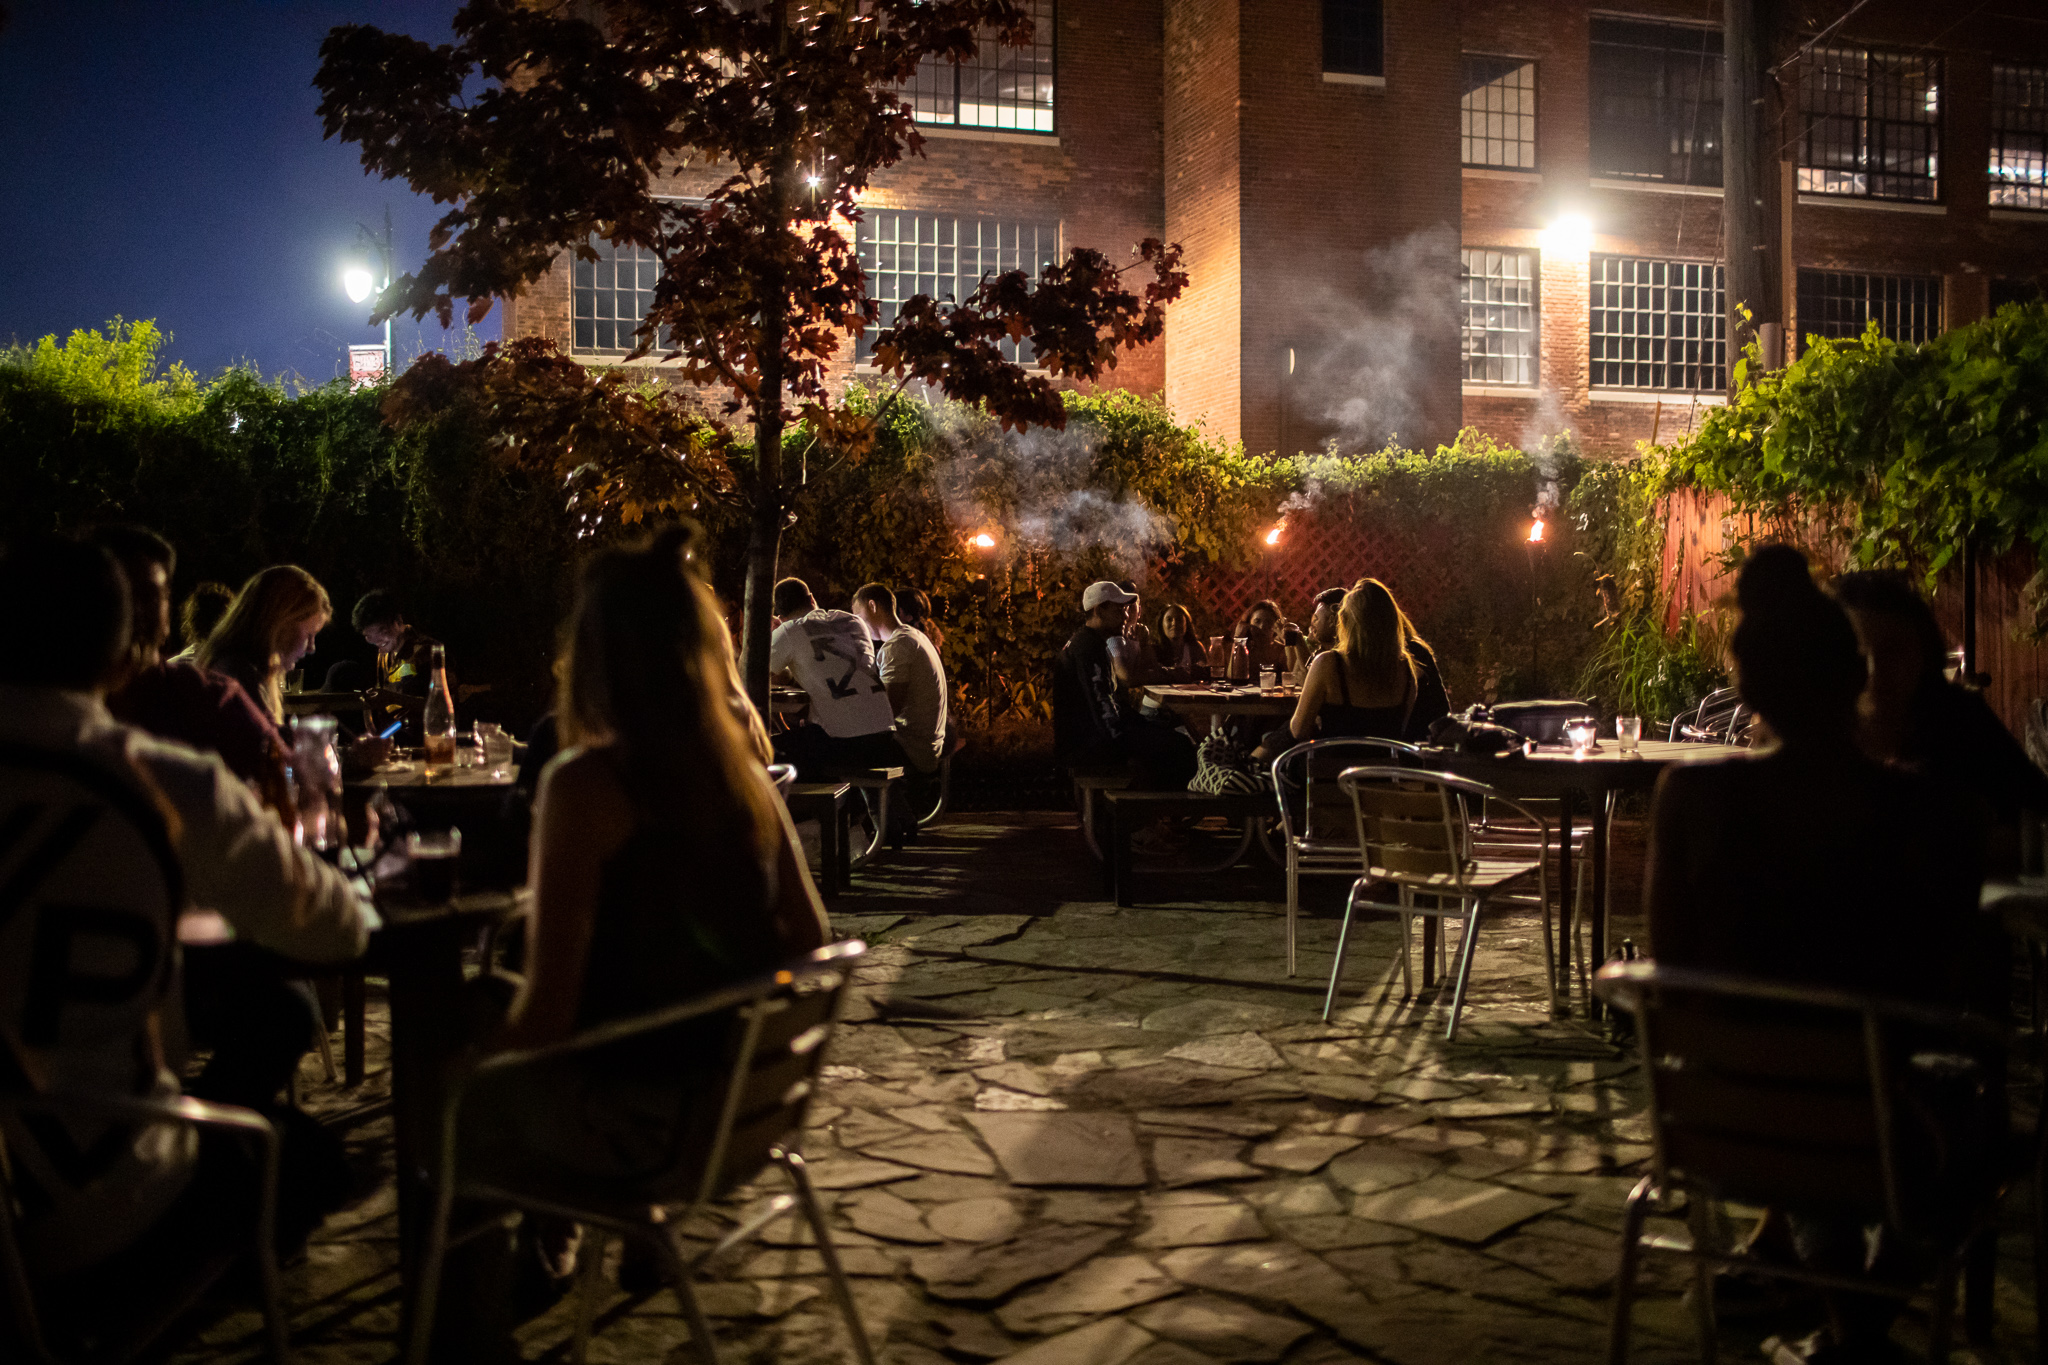 it's twilight on the motor city wine patio and three tiki torches near the ivy covered fence cast a light over the picnic tables and round patio tables filled with customers drinking wine and talking.